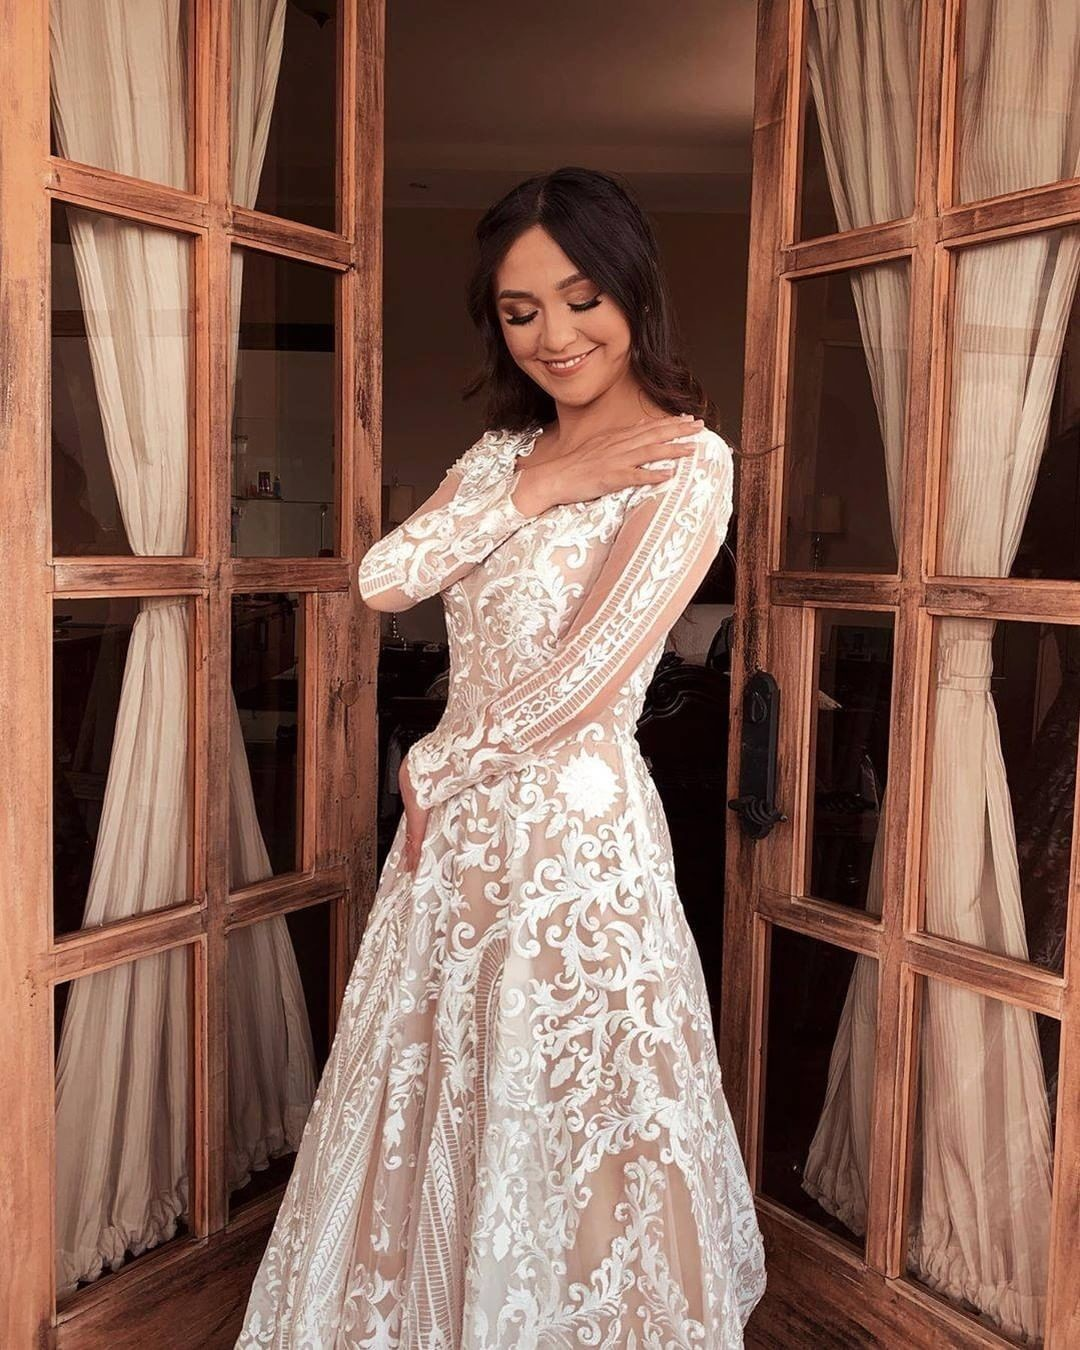 How many soon to be brides are going dress shopping this weekend?! 💫 If you're a fan of style